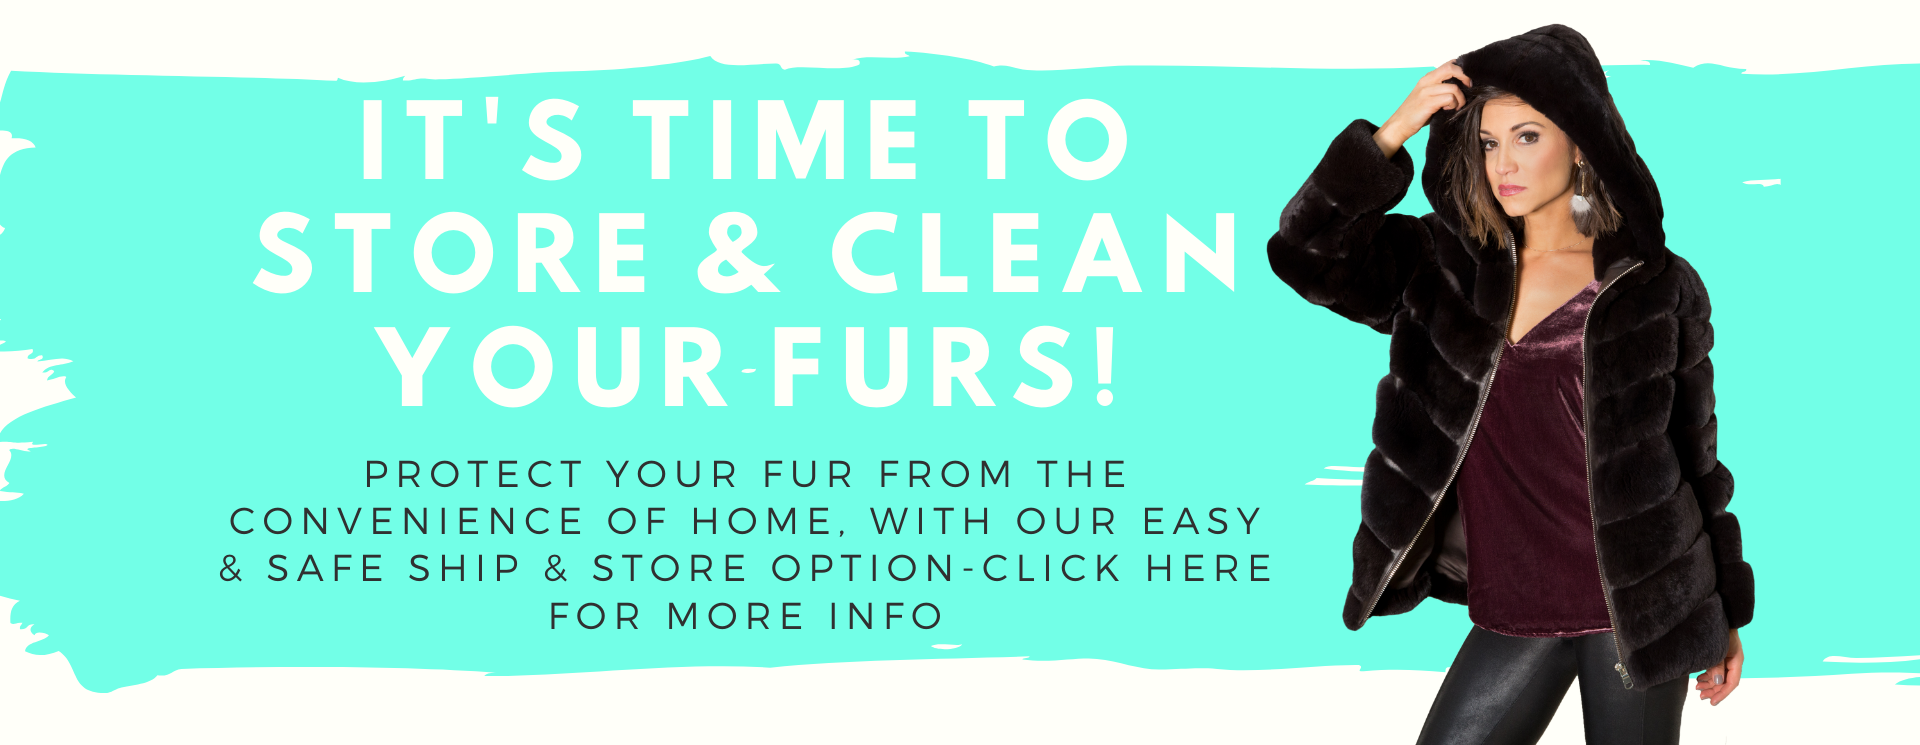 slider It's time to store & clean your fur - click here for more information